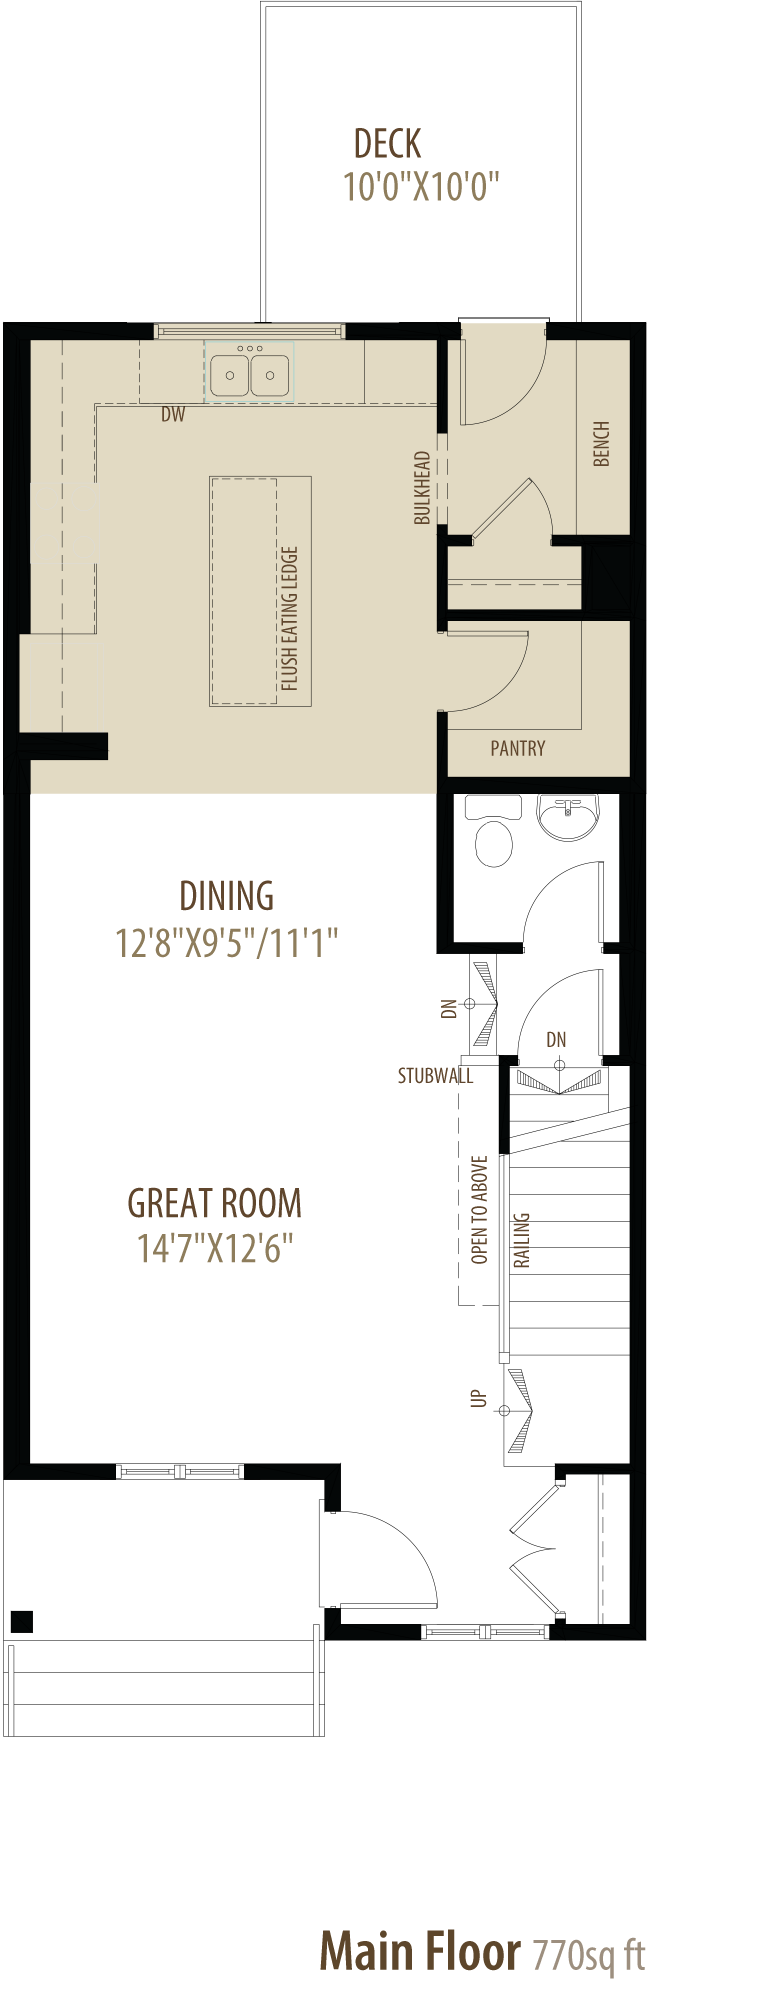 123 Howse Crescent Floorplan